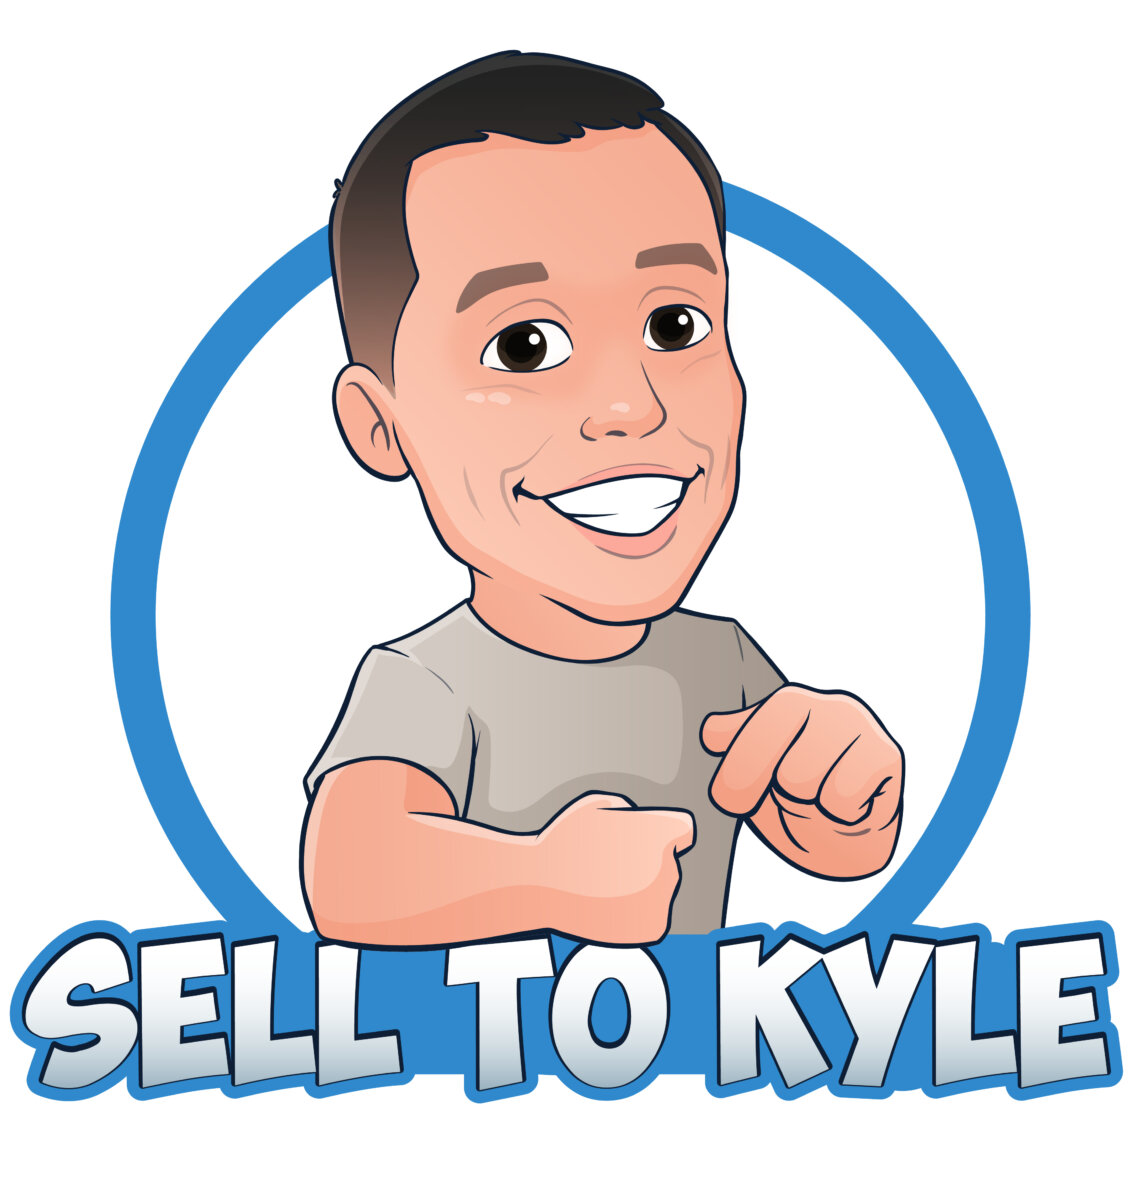 Kyle Buys Houses Provides the Best Real Estate Solution In Louisville and Surrounding Areas